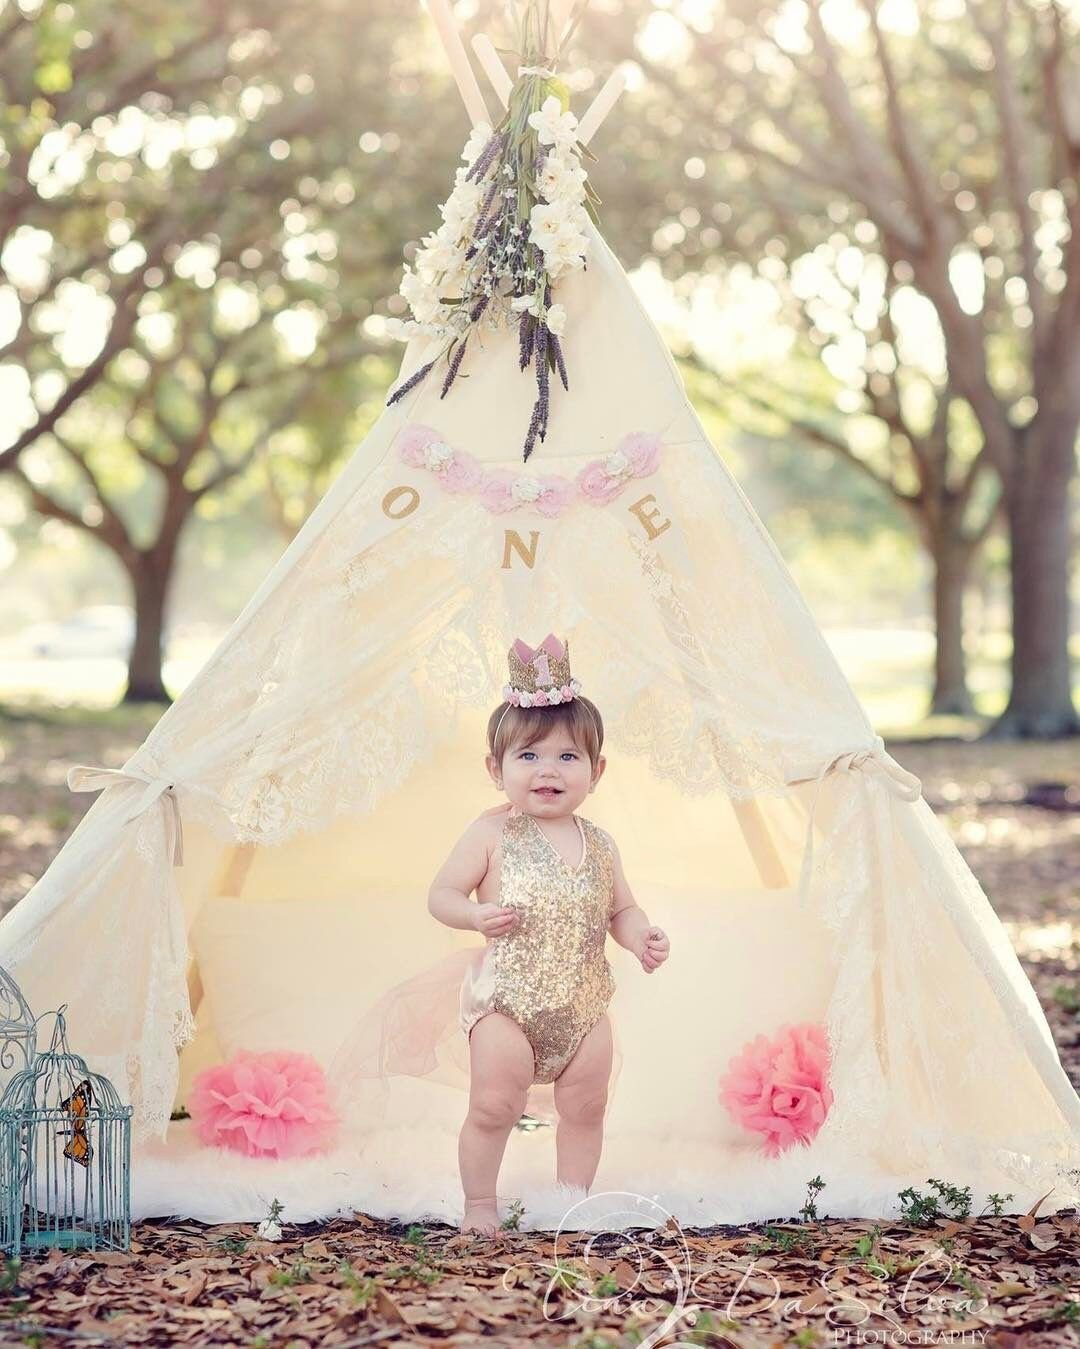 Little Dove Floral Classic Ivory Kids Teepee Kids Play Tent Childrens Play House Tipi Kids Room Decor by little dove (Image #5)